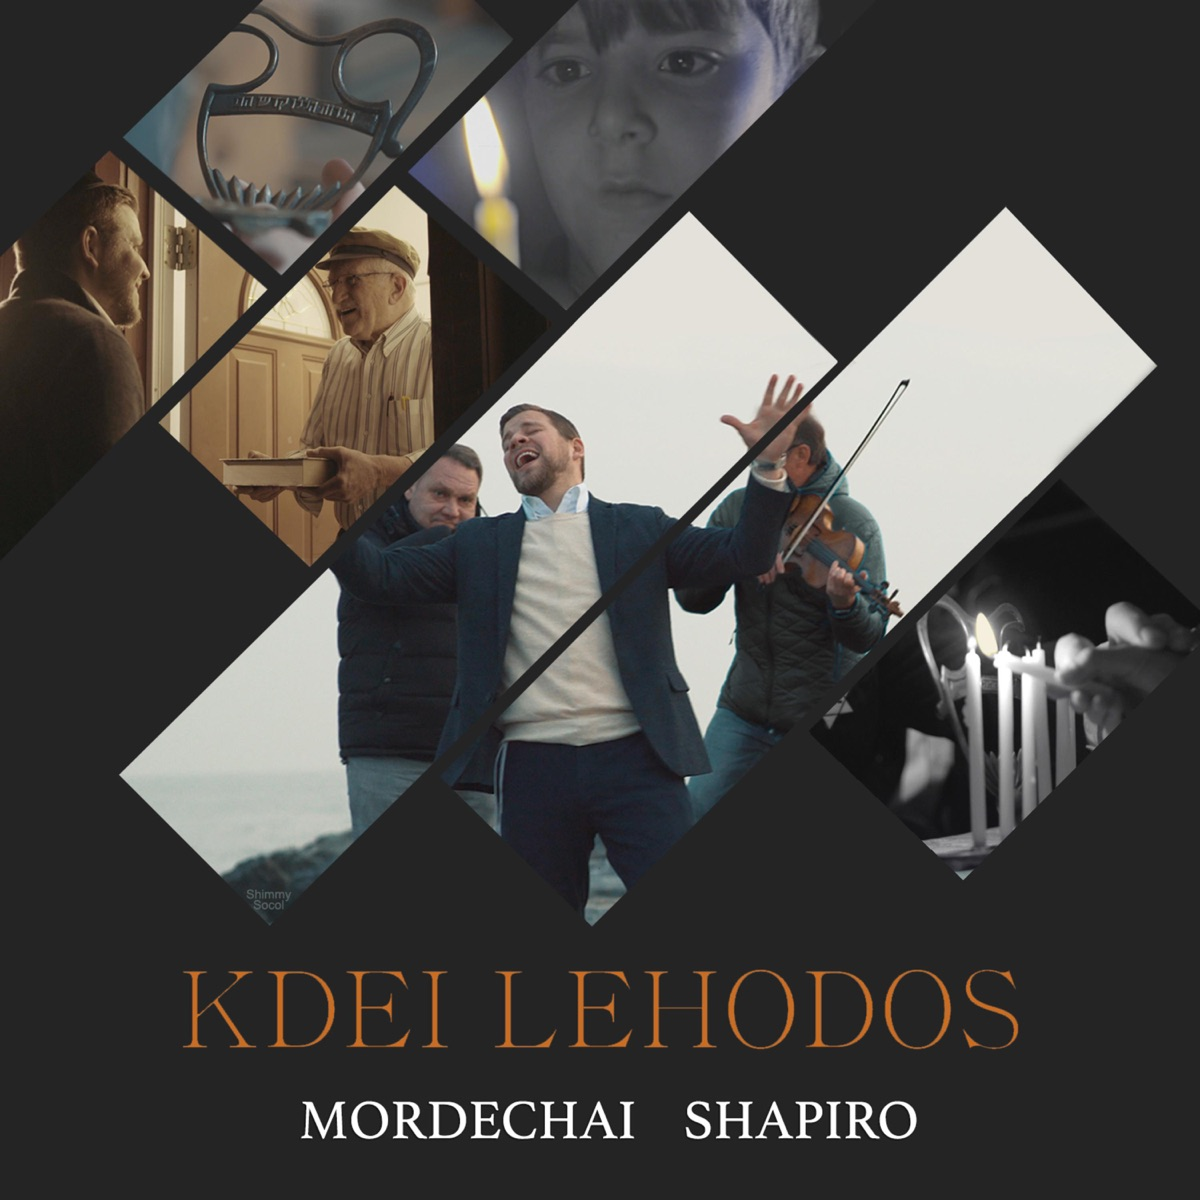 Kdei Lehodos - Single Mordechai Shapiro CD cover